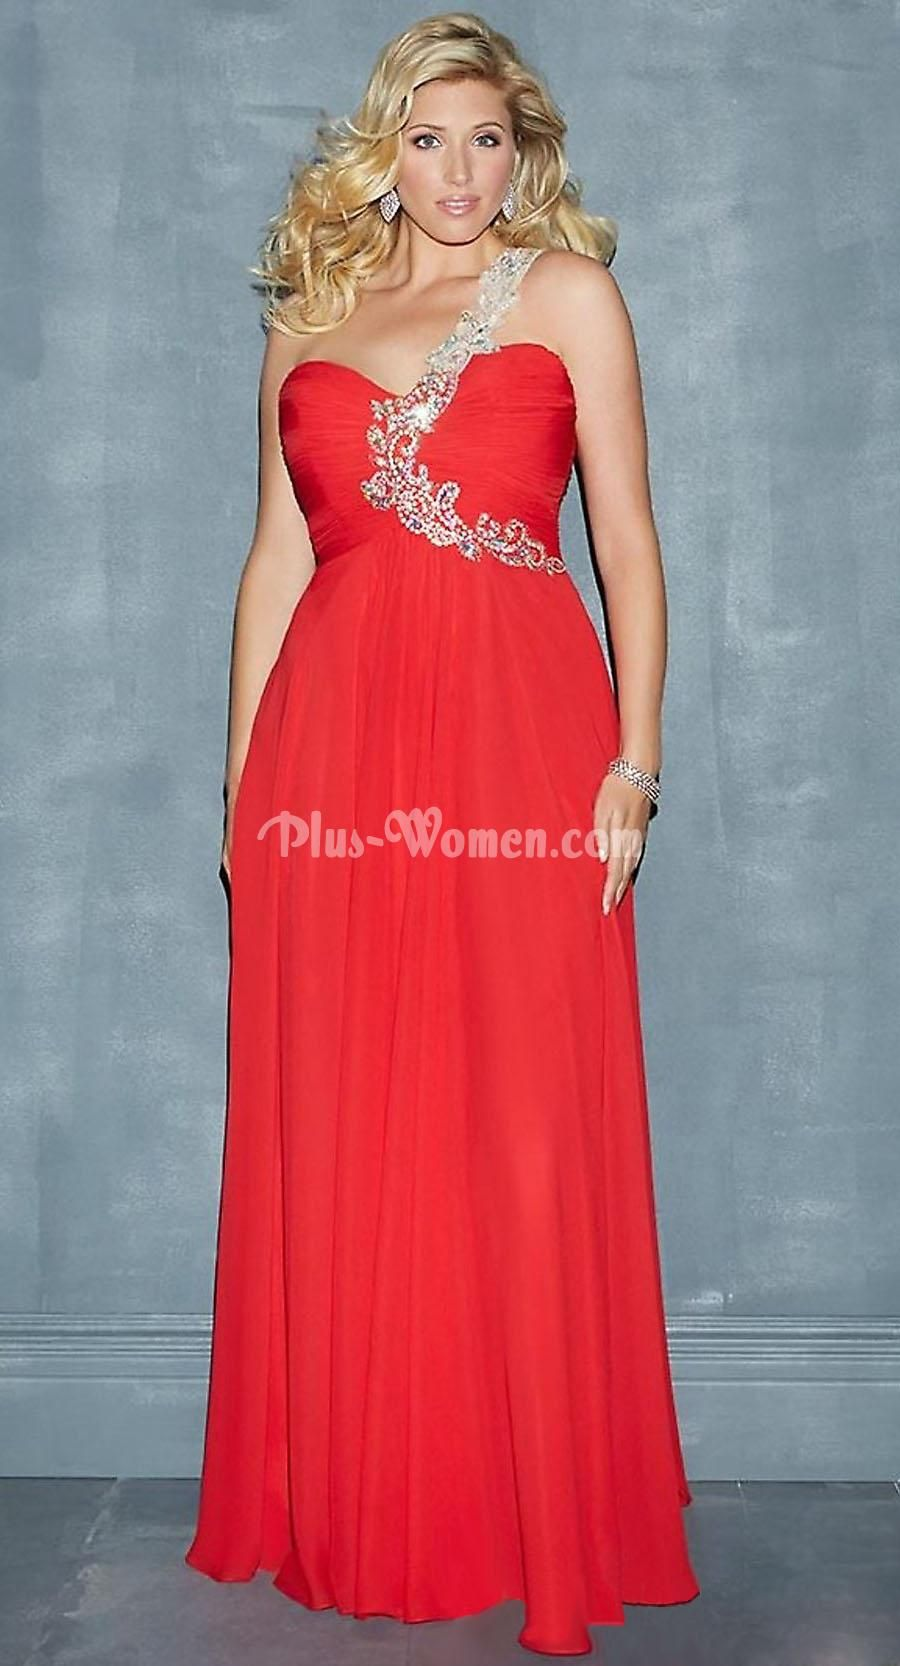 One shoulder floor length red plus size prom formal dress love it